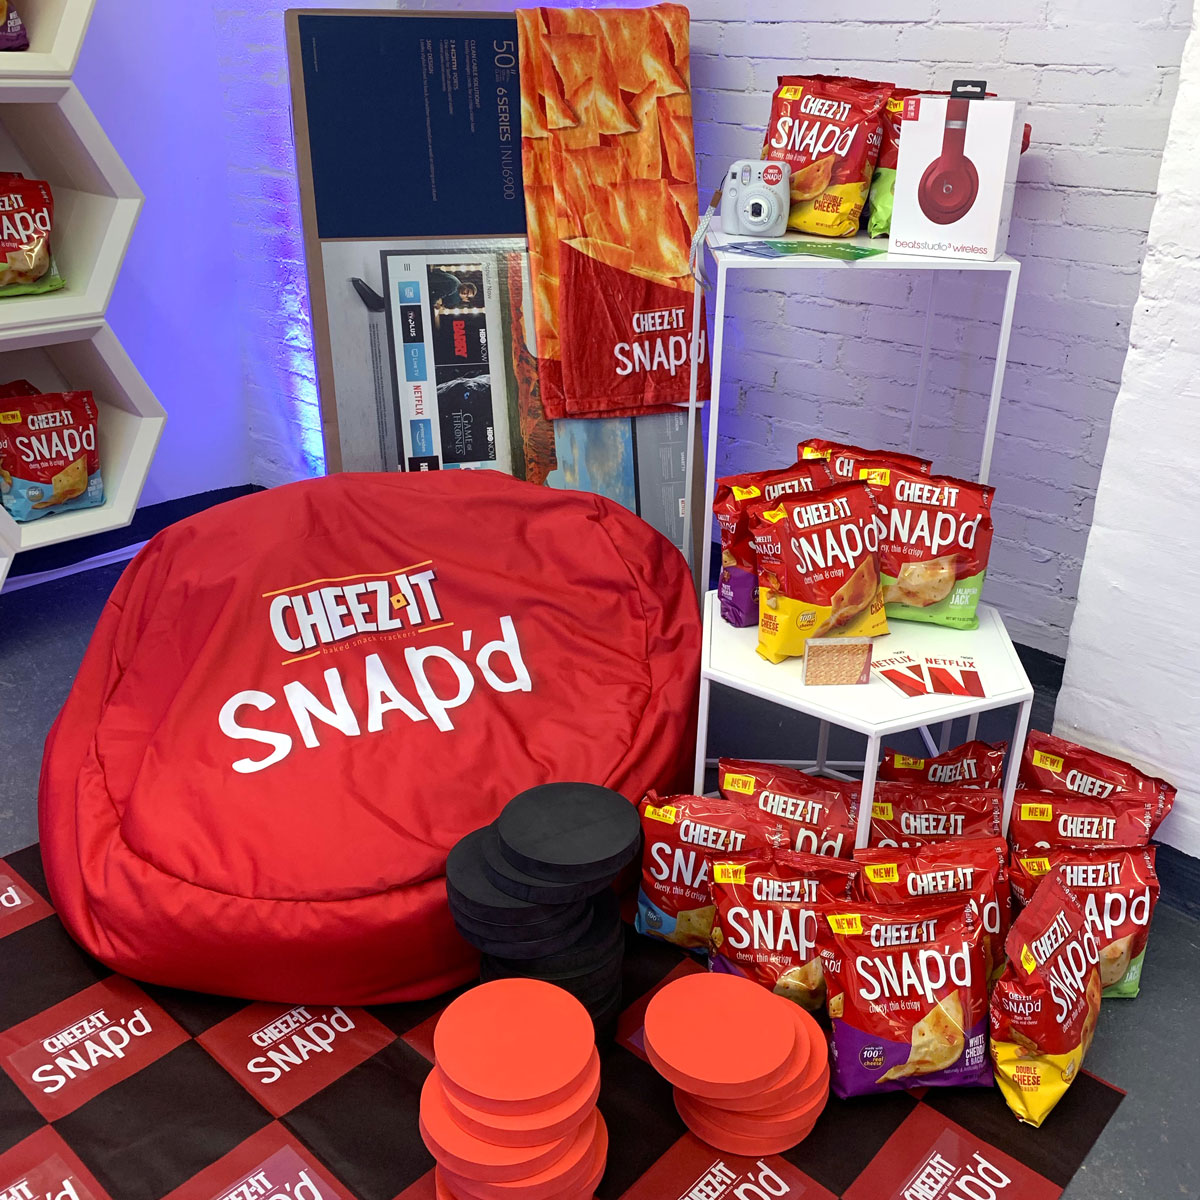 Take a Peek Inside the Cheez-It Bunker Filled with a Year's Supply of the Brand's Newest Snack